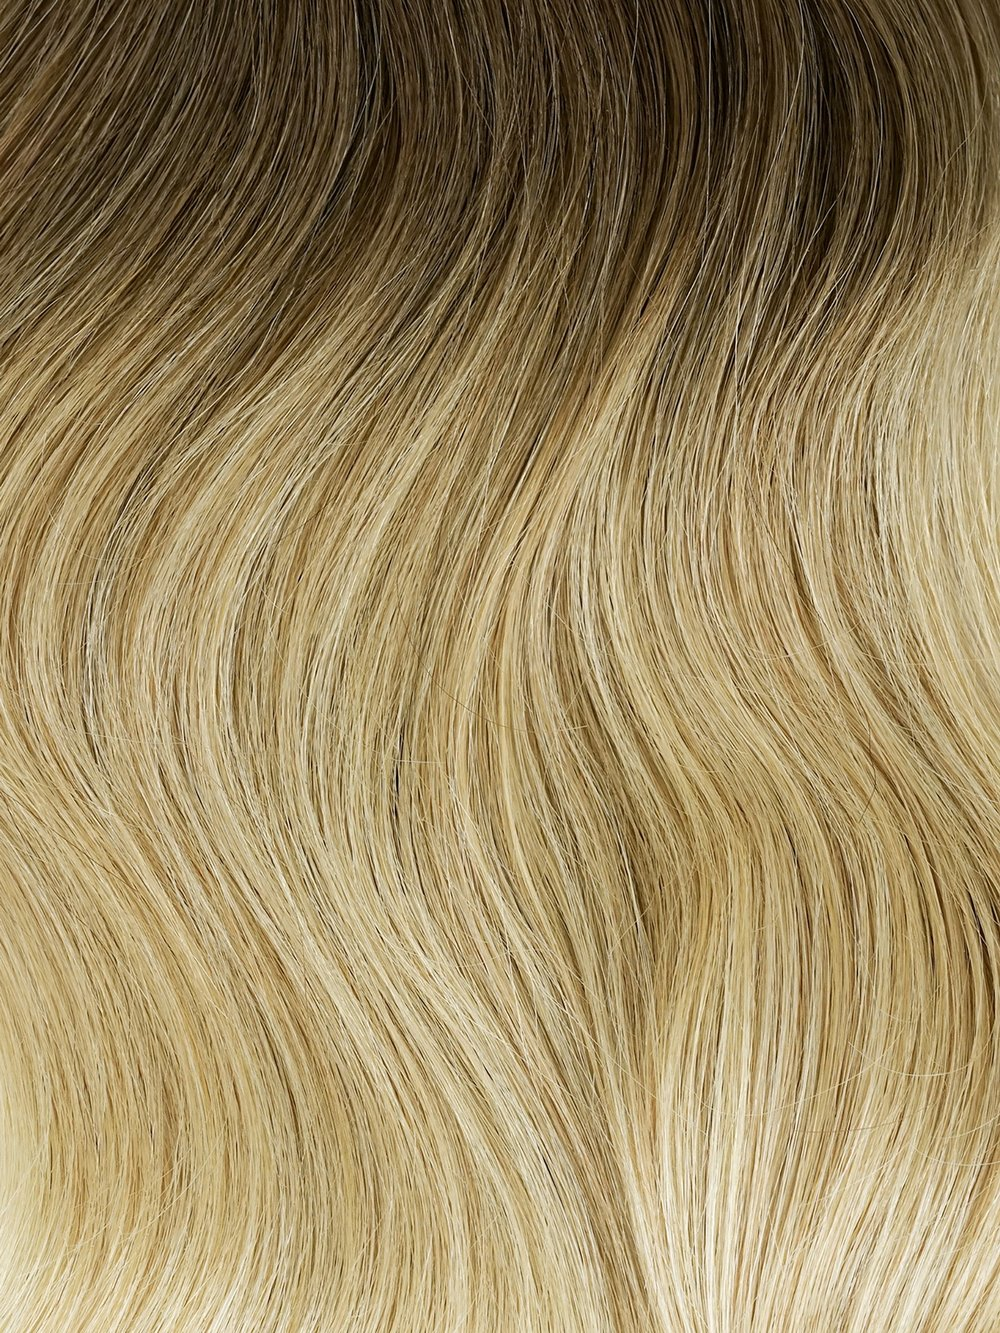 Champagne BALAYAGE #T6/184/16 - Using modern blending highlight techniques, this set has three transition points from a chestnut brown to a dimensional blonde seamlessly blending into a warm platinum blonde.